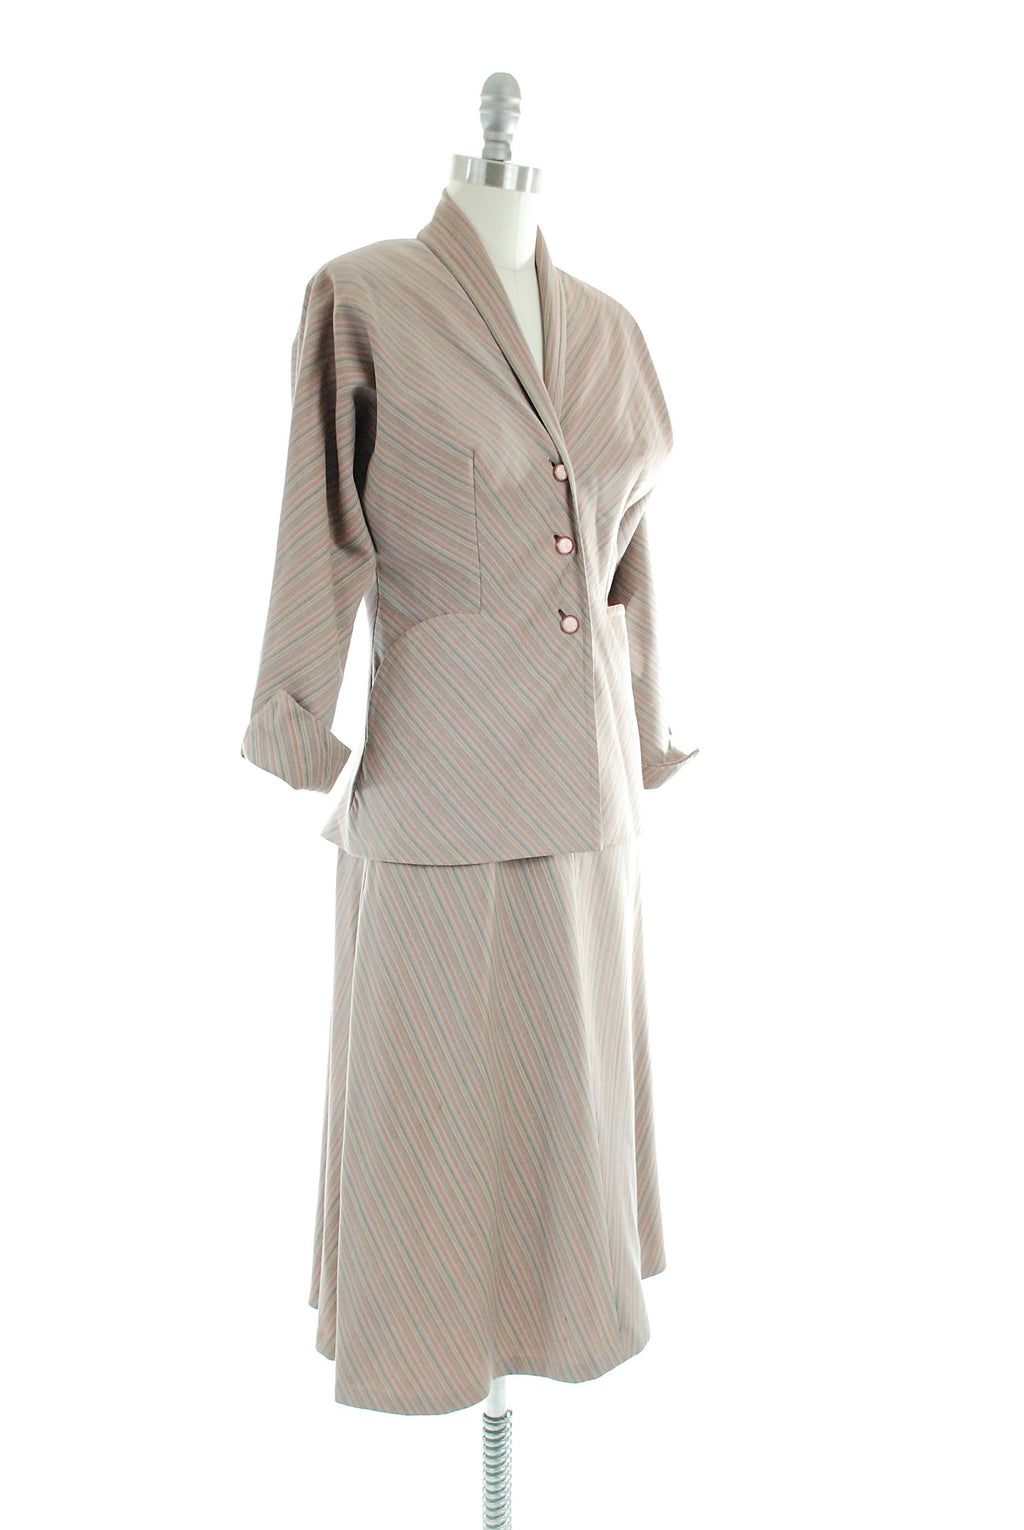 Vintage 1950s Dress - Rare 50s Striped Suit by Designer Claire McCardell Gorgeous Subtle Stripes